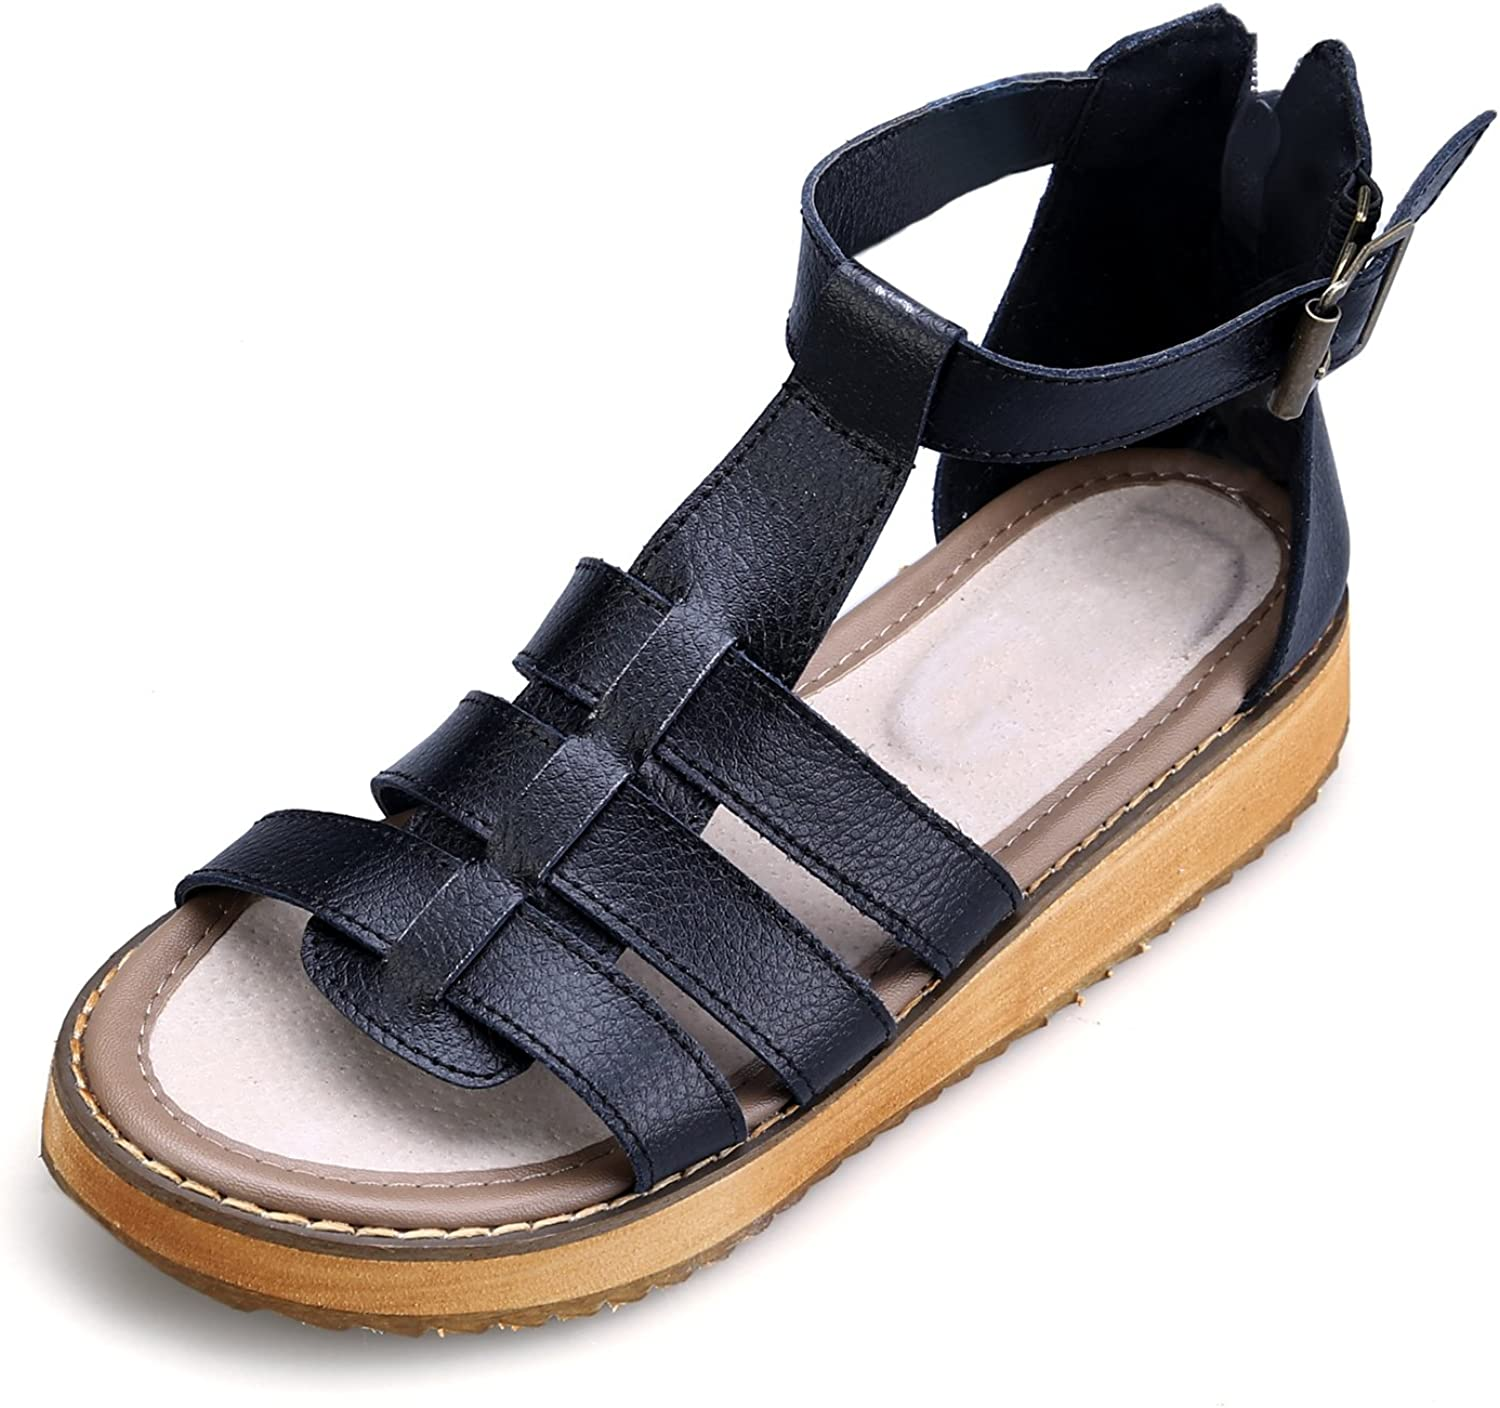 Smilun Lady's Sandal T Strap Strappy Sandal Zipper Wedge Sandals